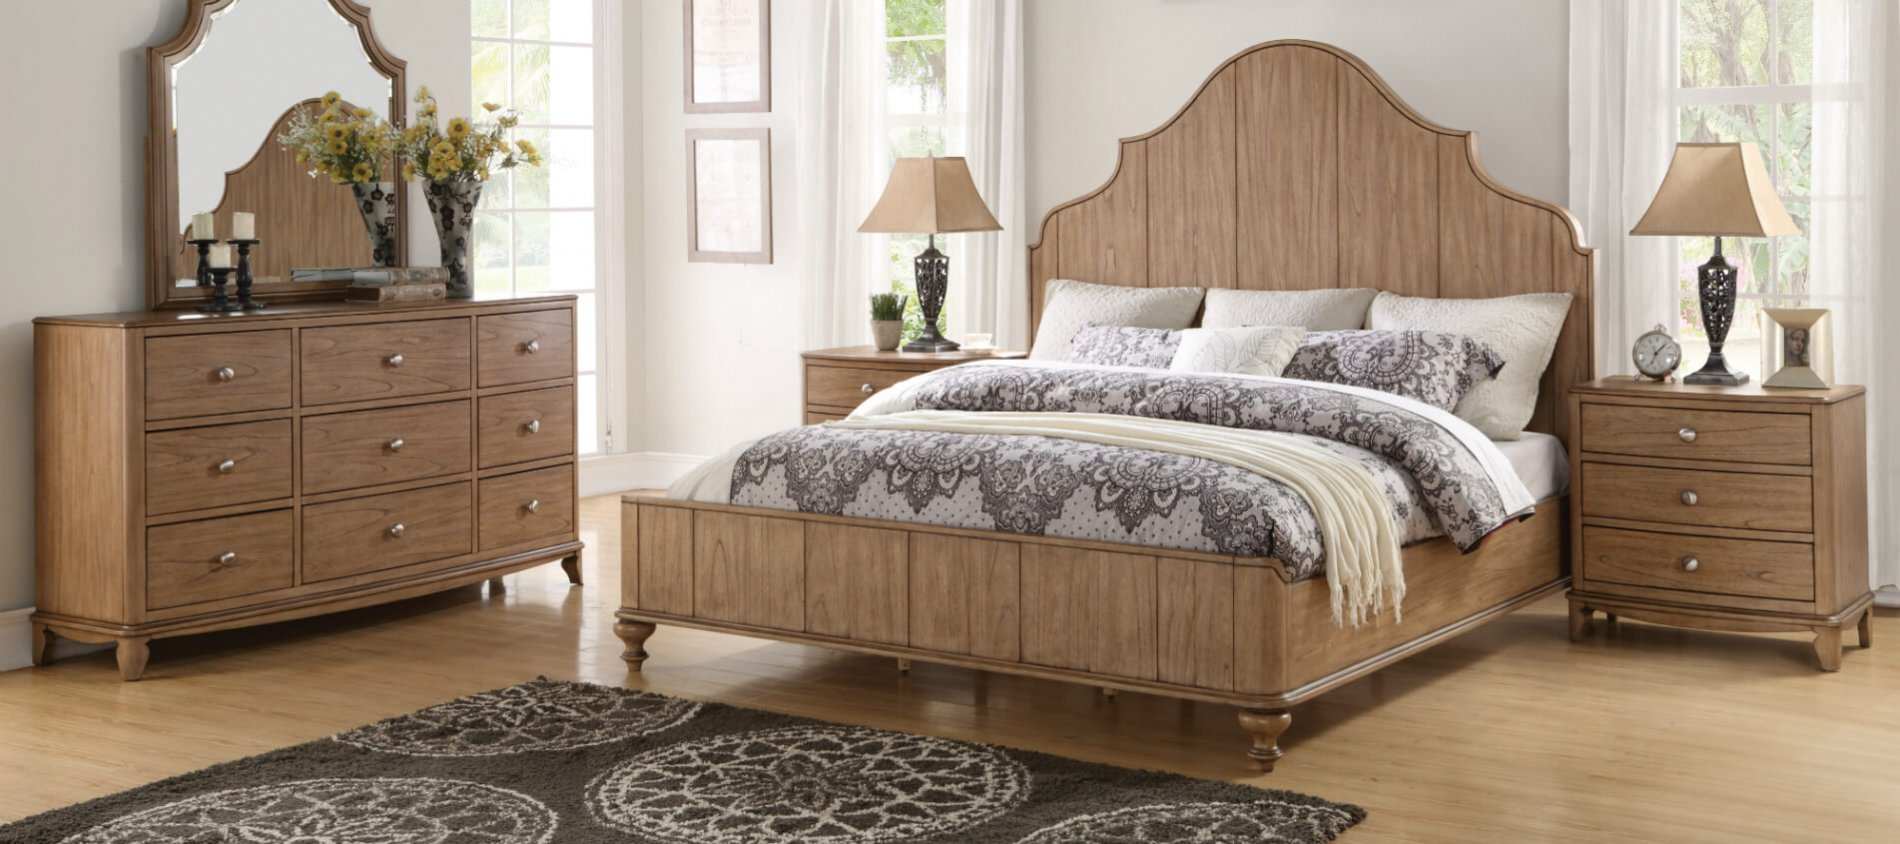 Miramar Collection Bedroom set